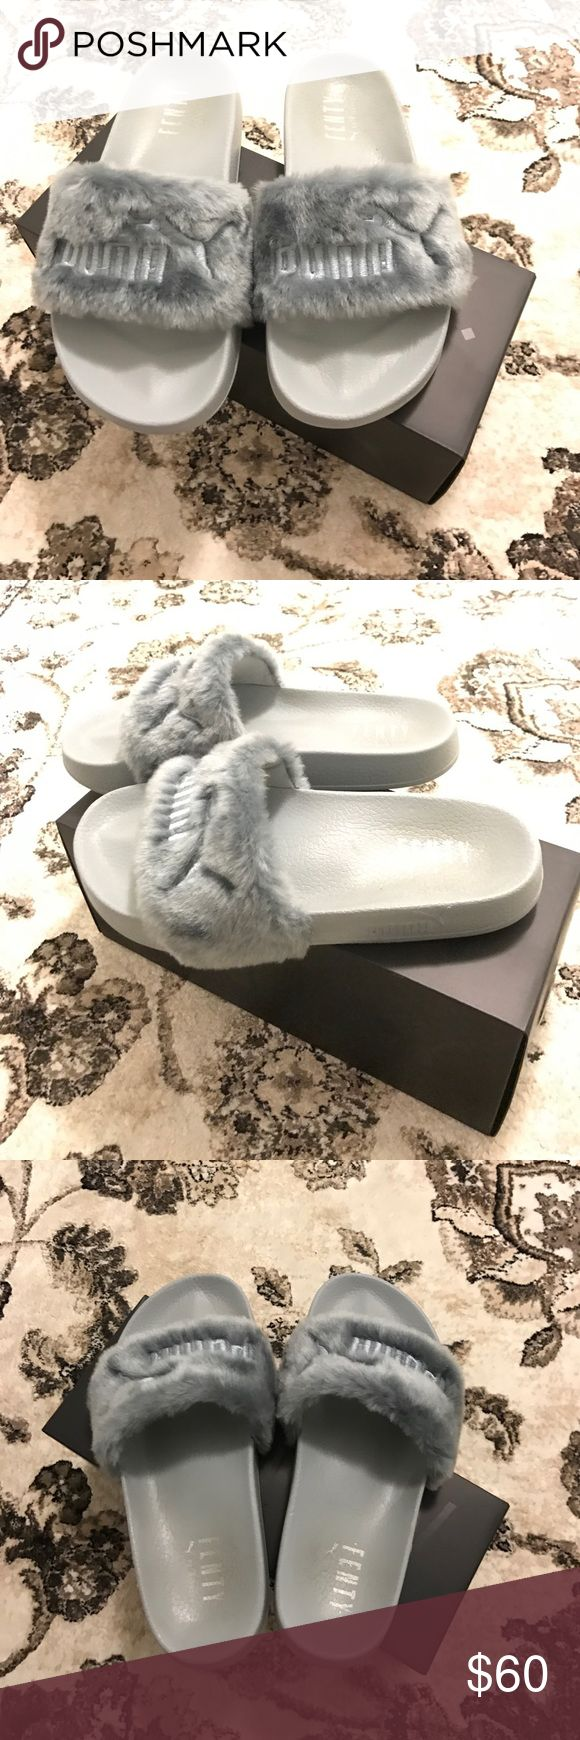 Puma fenty by Rihanna gray sandals size 7.5 Preowned Puma fenty by Rihanna gray sandals size 7.5 dustbag and box included. Puma Shoes Sandals